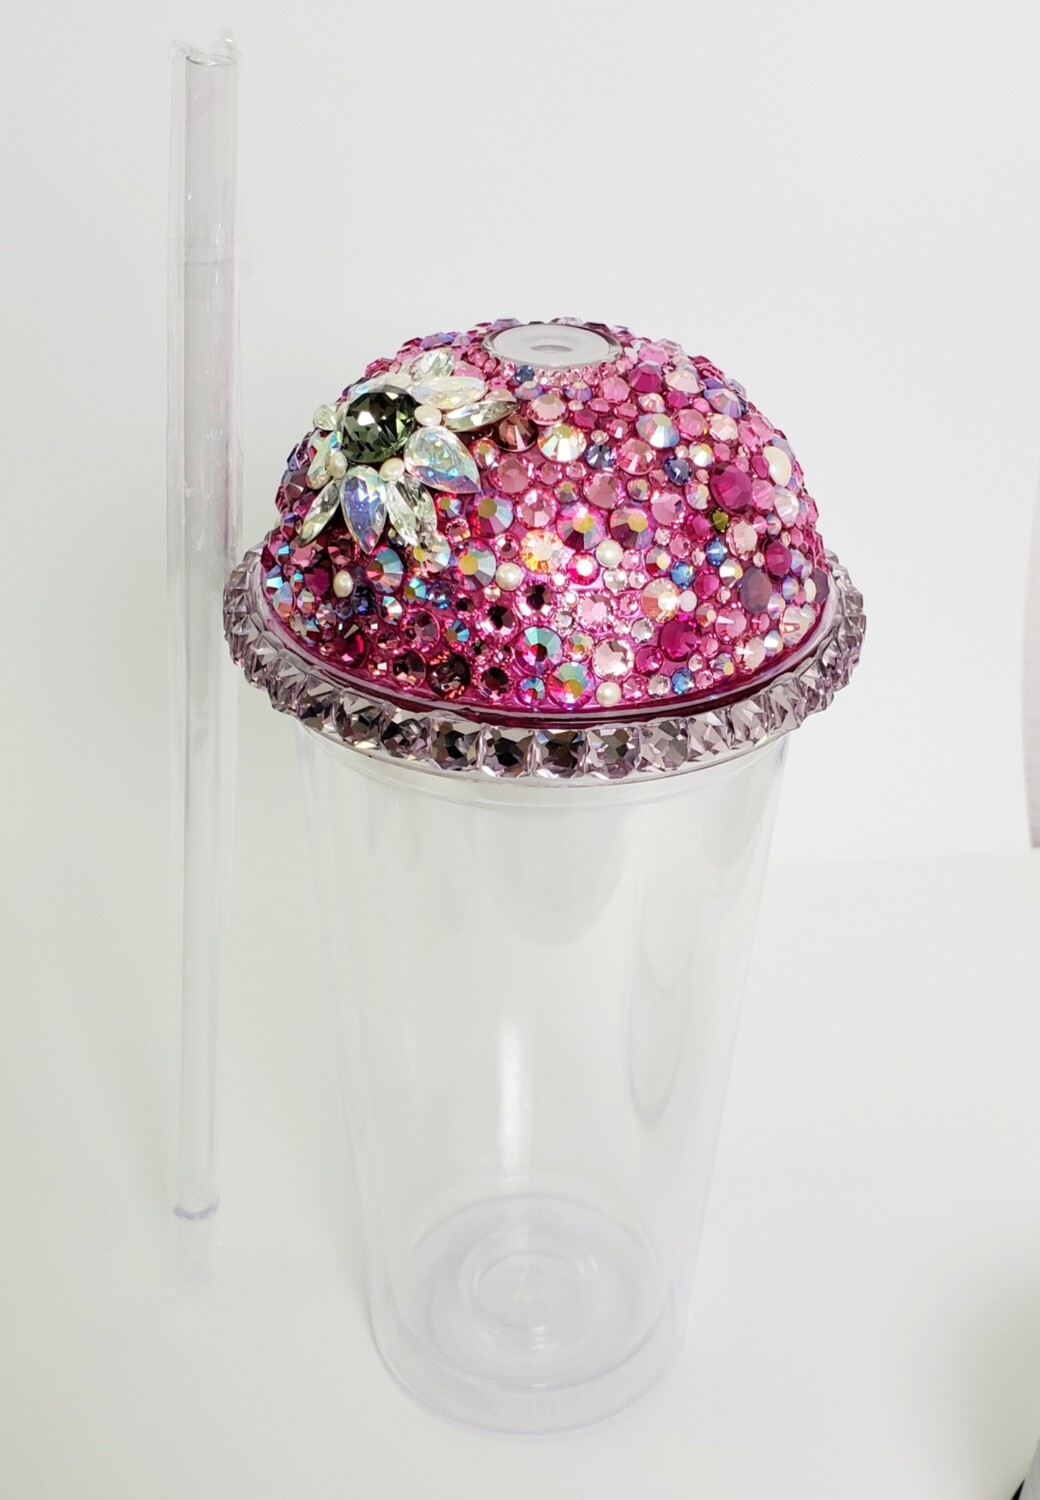 20oz Swarovski Crystal, Dome Lid, with CLEAR Cup and Straw. Flower-Pinks